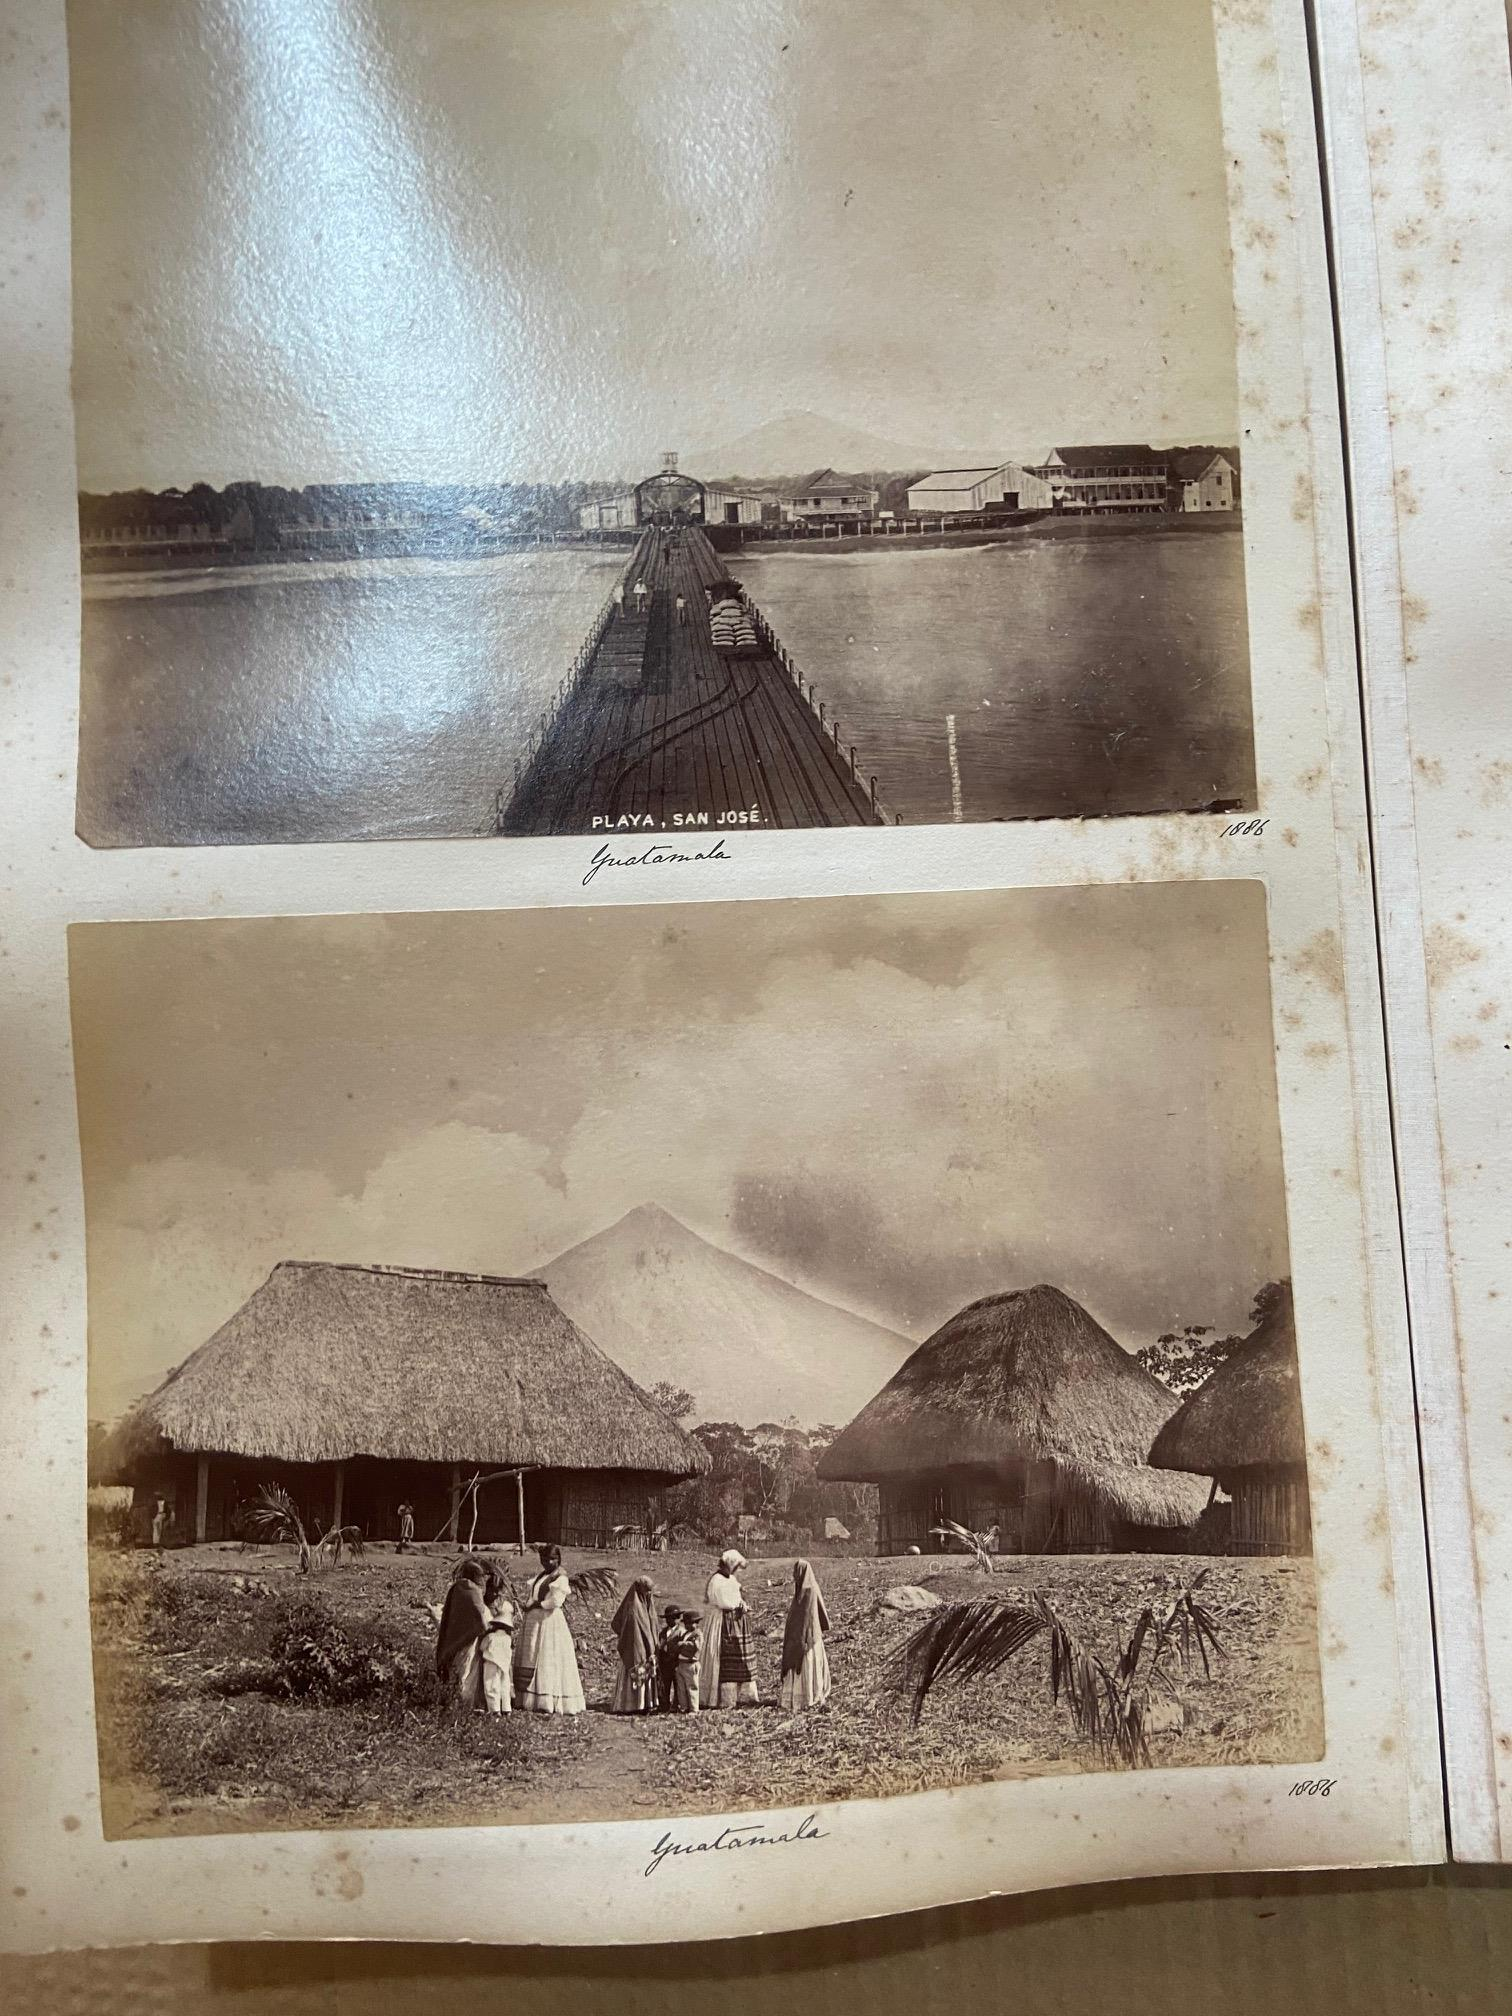 Photographs: Two large folio Albums of Photographs, each c. 1870 - 1890's. One Album contains - Image 9 of 31